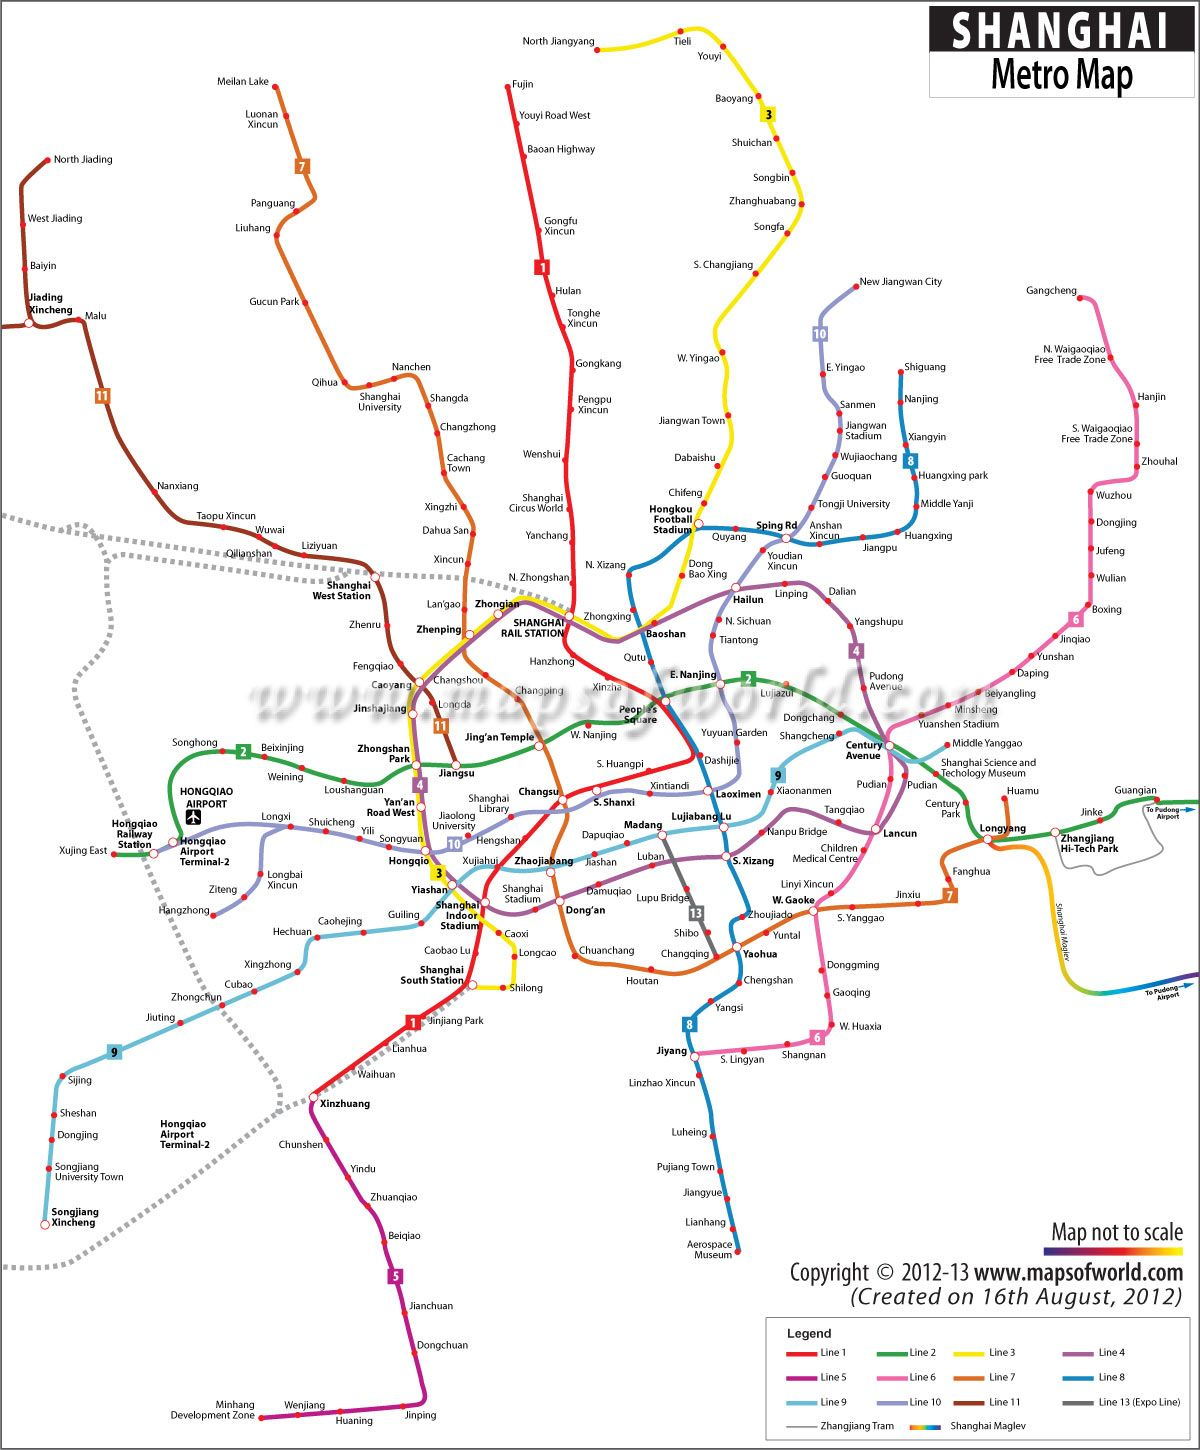 Map Showing The Route Of Metro Rail Networks Of Shanghai City In Asia Metro Map Map Transit Map